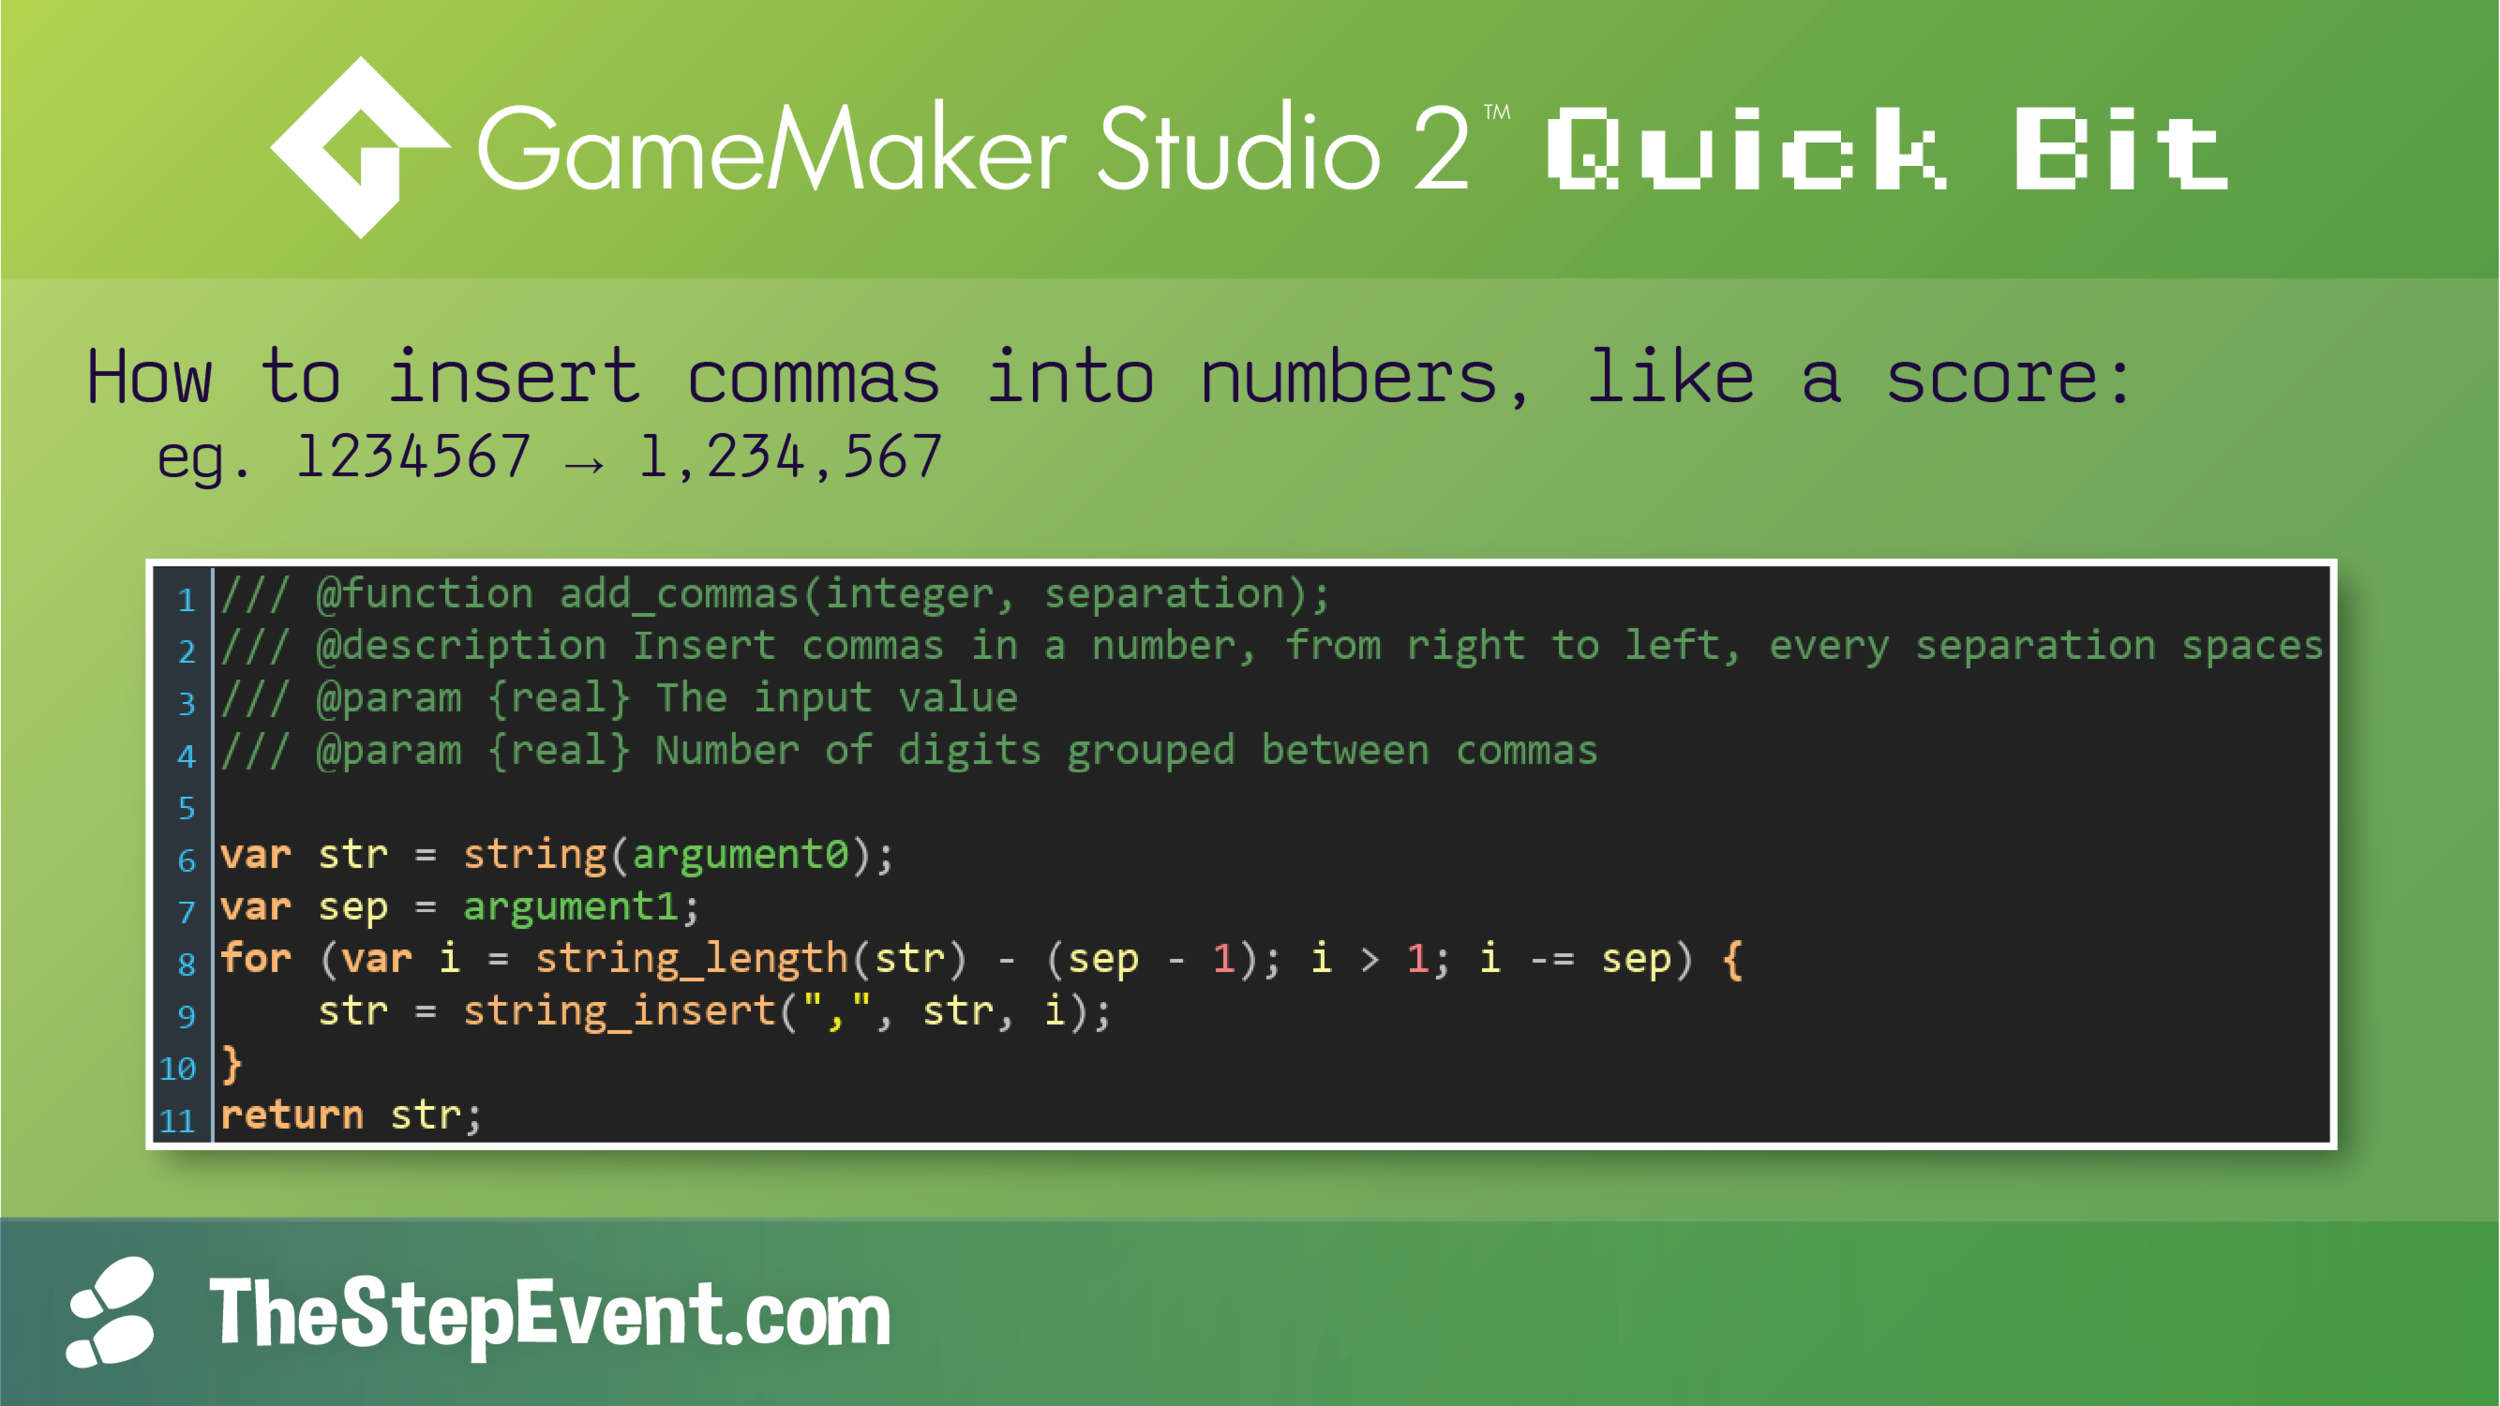 How to insert commas into numbers, like a score.